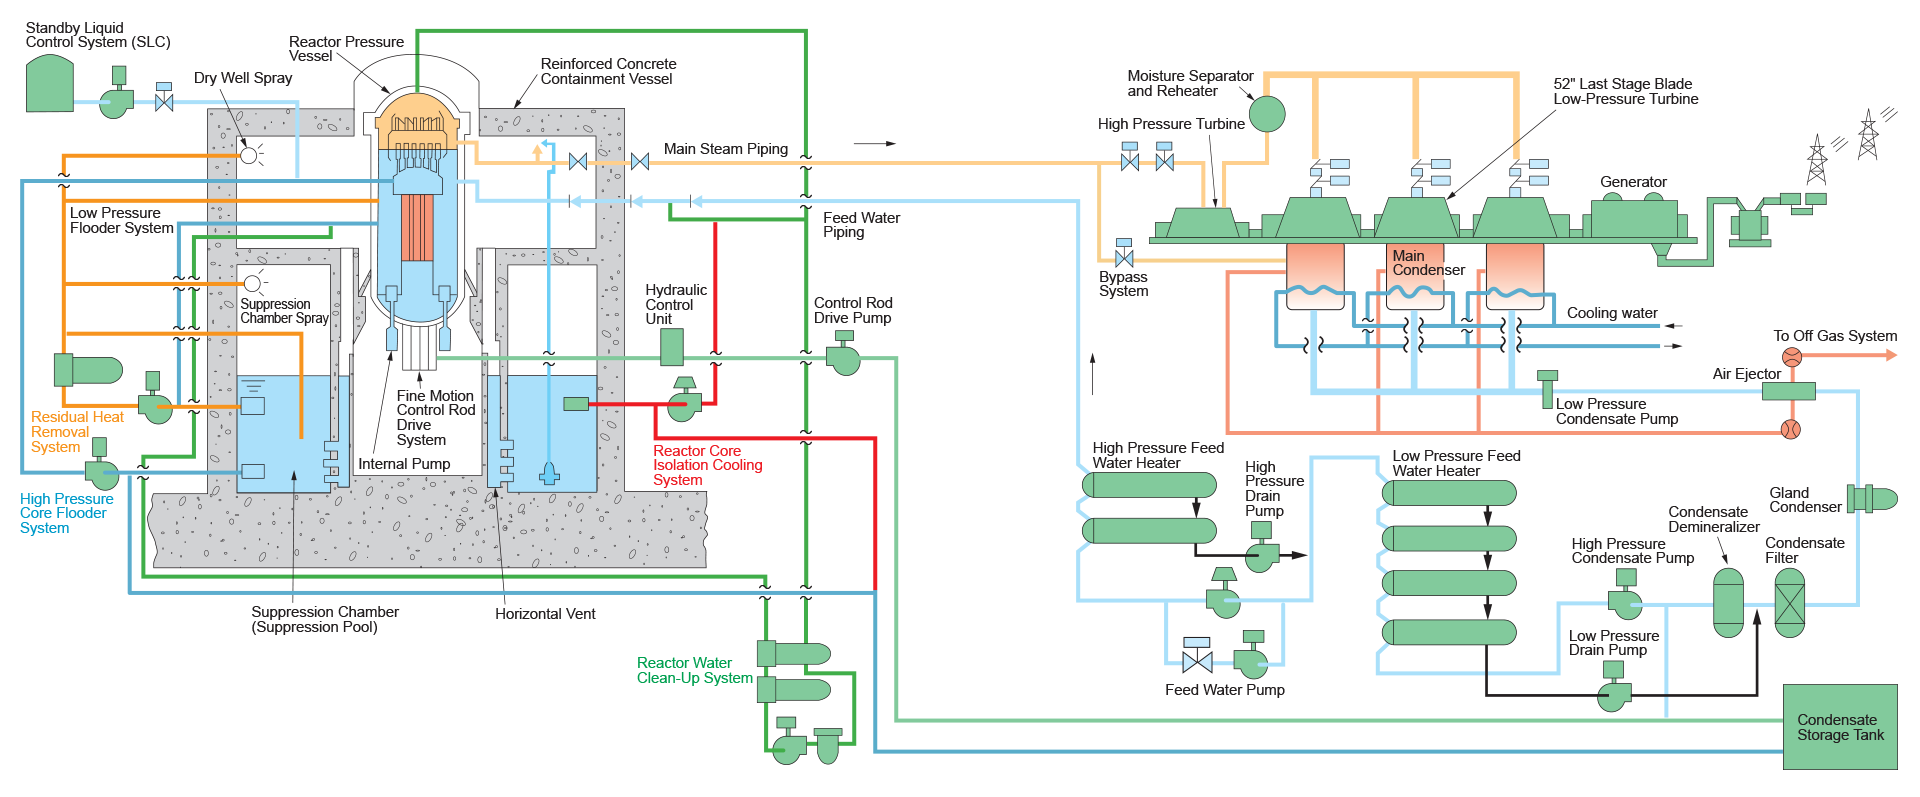 Advanced Boiling Water Reactor Flow Diagram ...